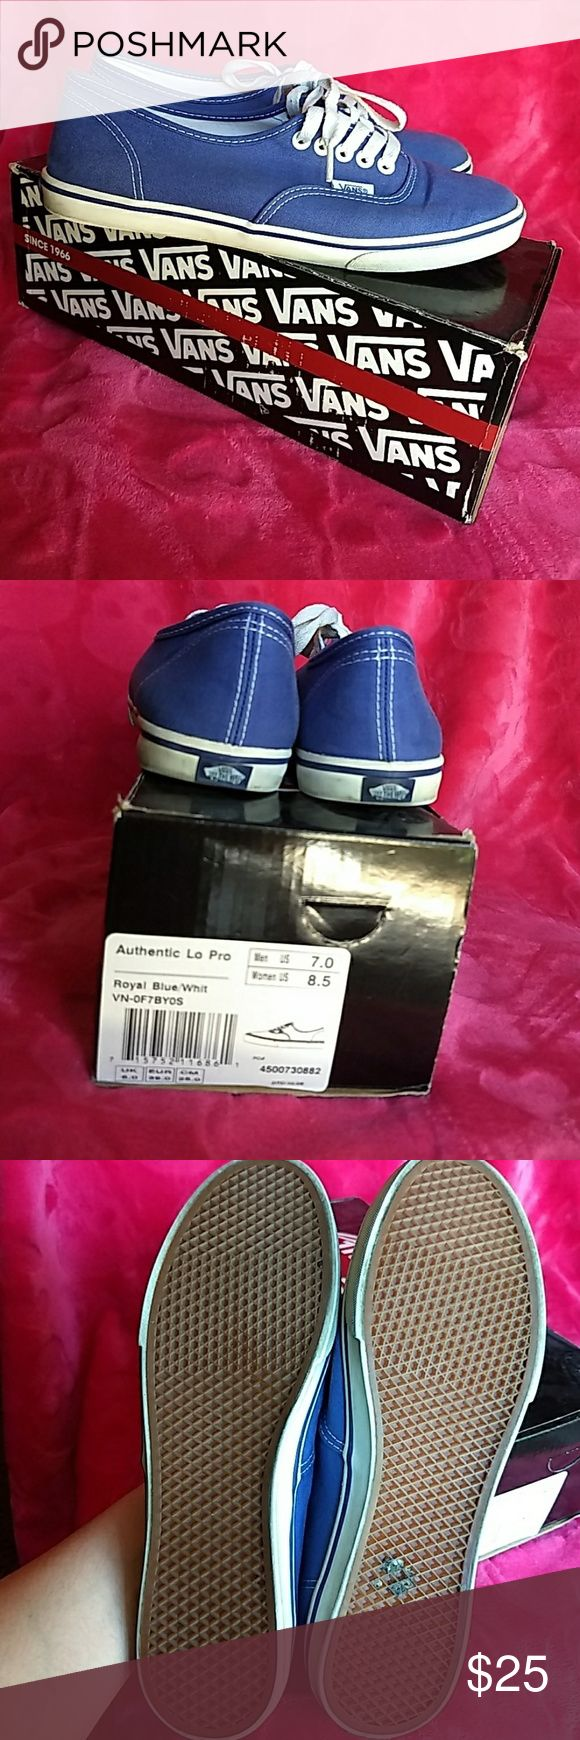 EUC Royal Blue Vans - Lo Pro Used blue vans. Low profile soles. Size 7 Mens/ 8.5 Women. Vans Shoes Sneakers